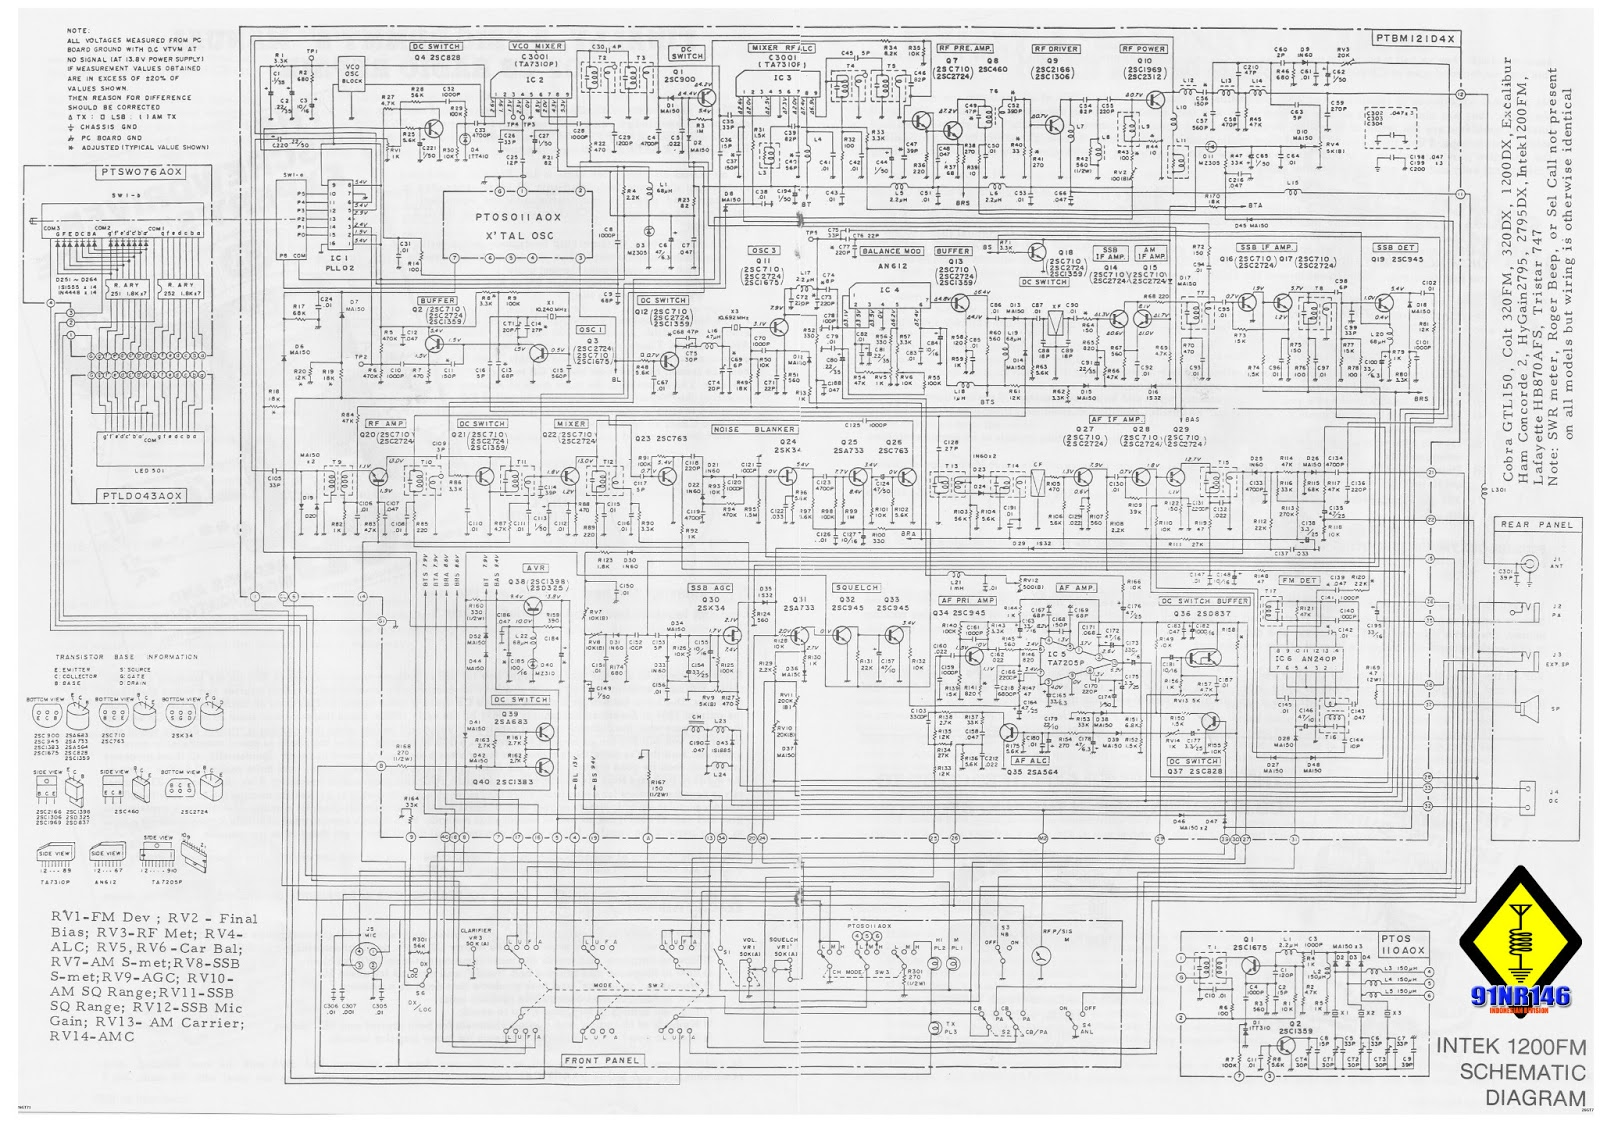 91nr146 Station January 2013 27mhz Cb Receiver Circuit Radio Scheme Collections